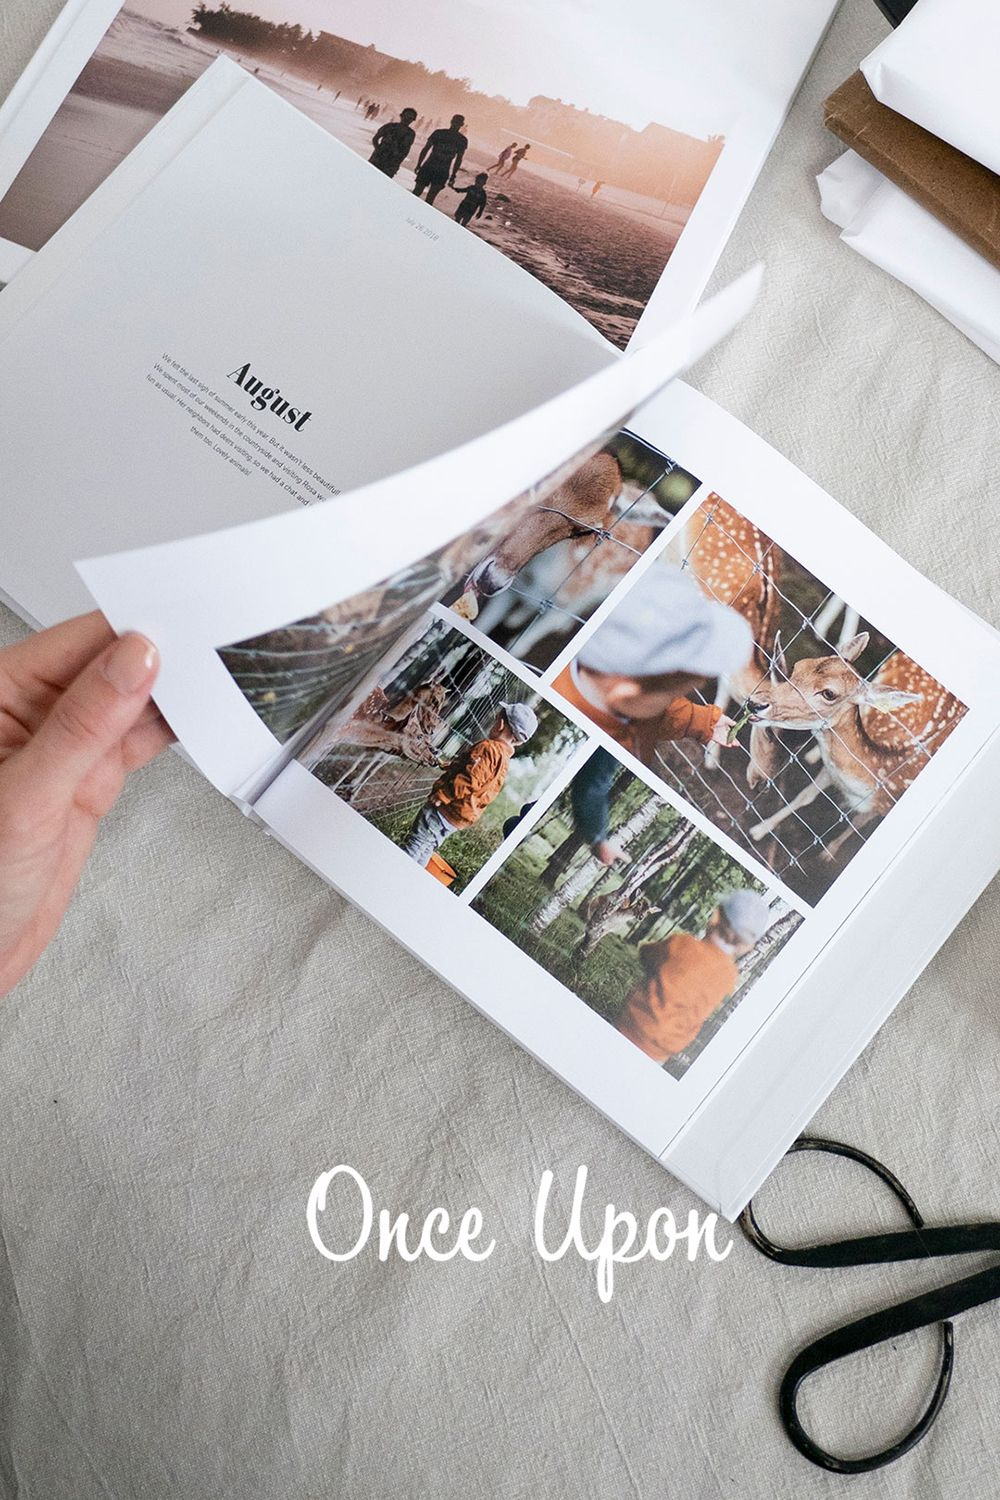 THE NEW WAY OF MAKING PHOTOBOOKS! Your albums design